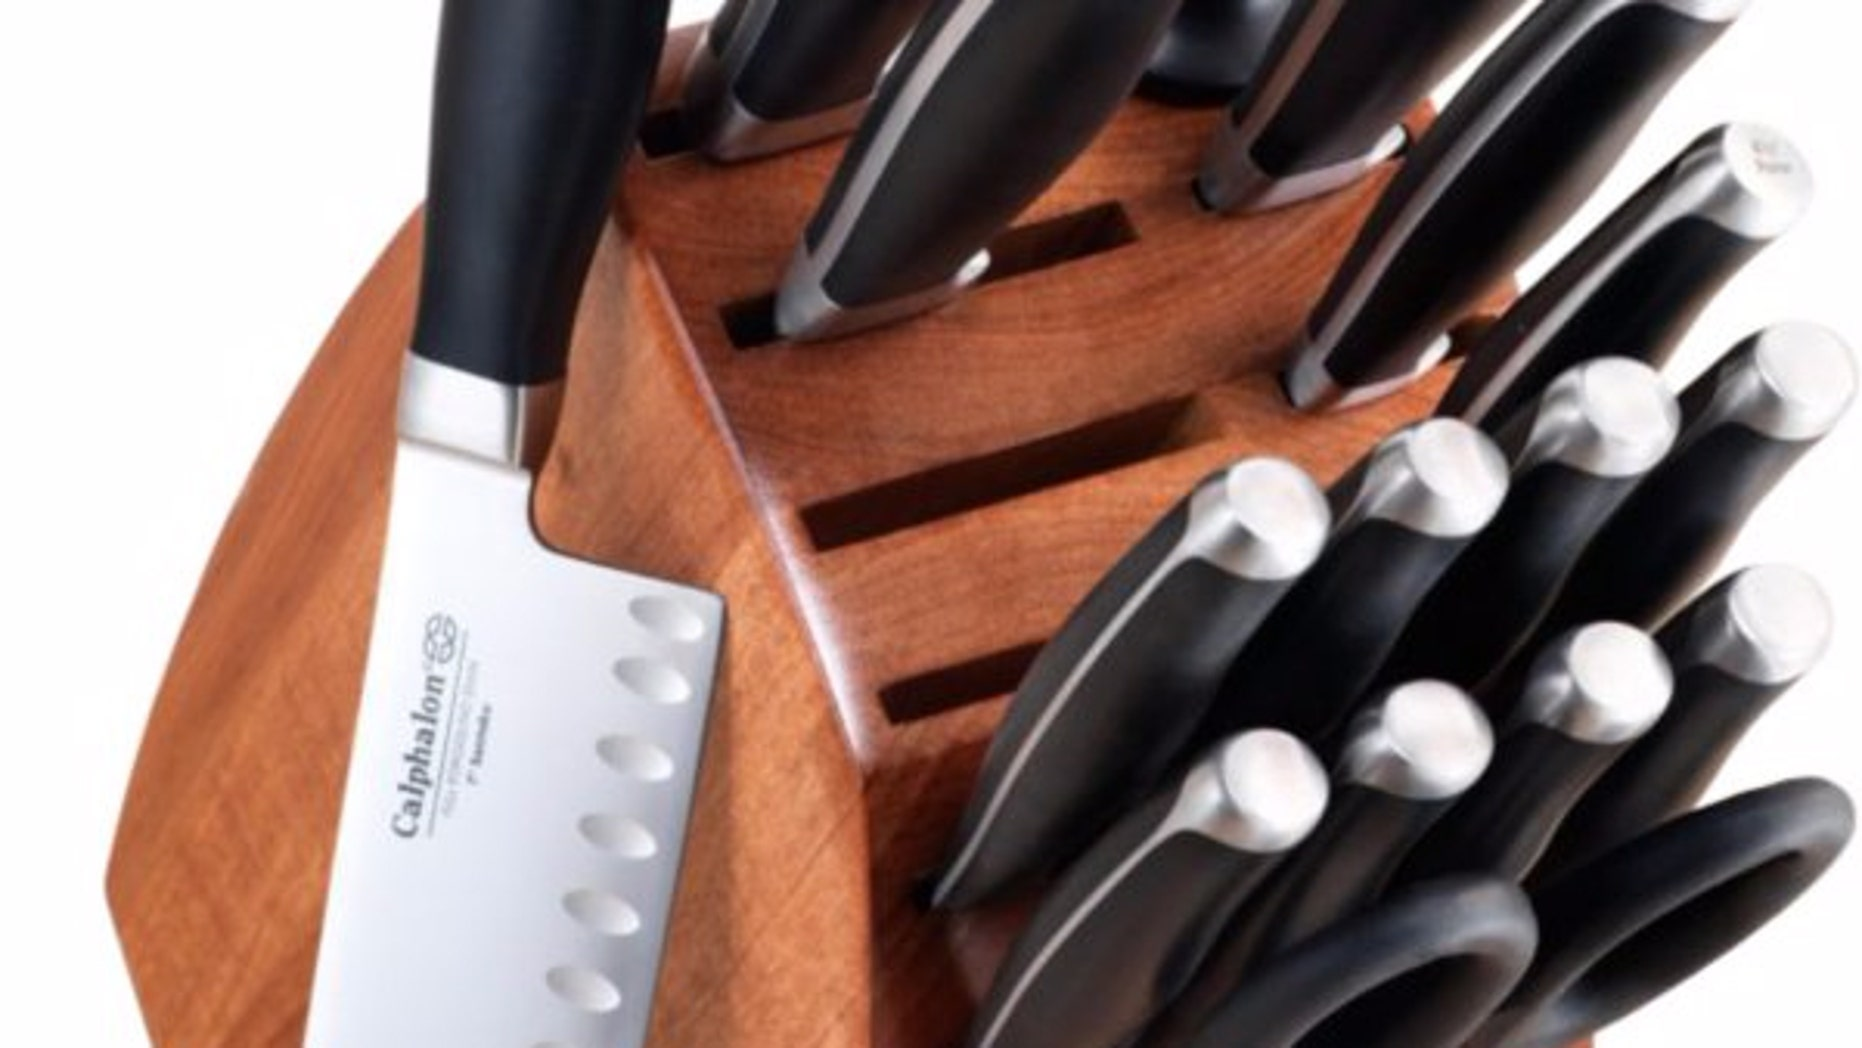 This 17-piece cutlery set from Calphalon may have defective knives.